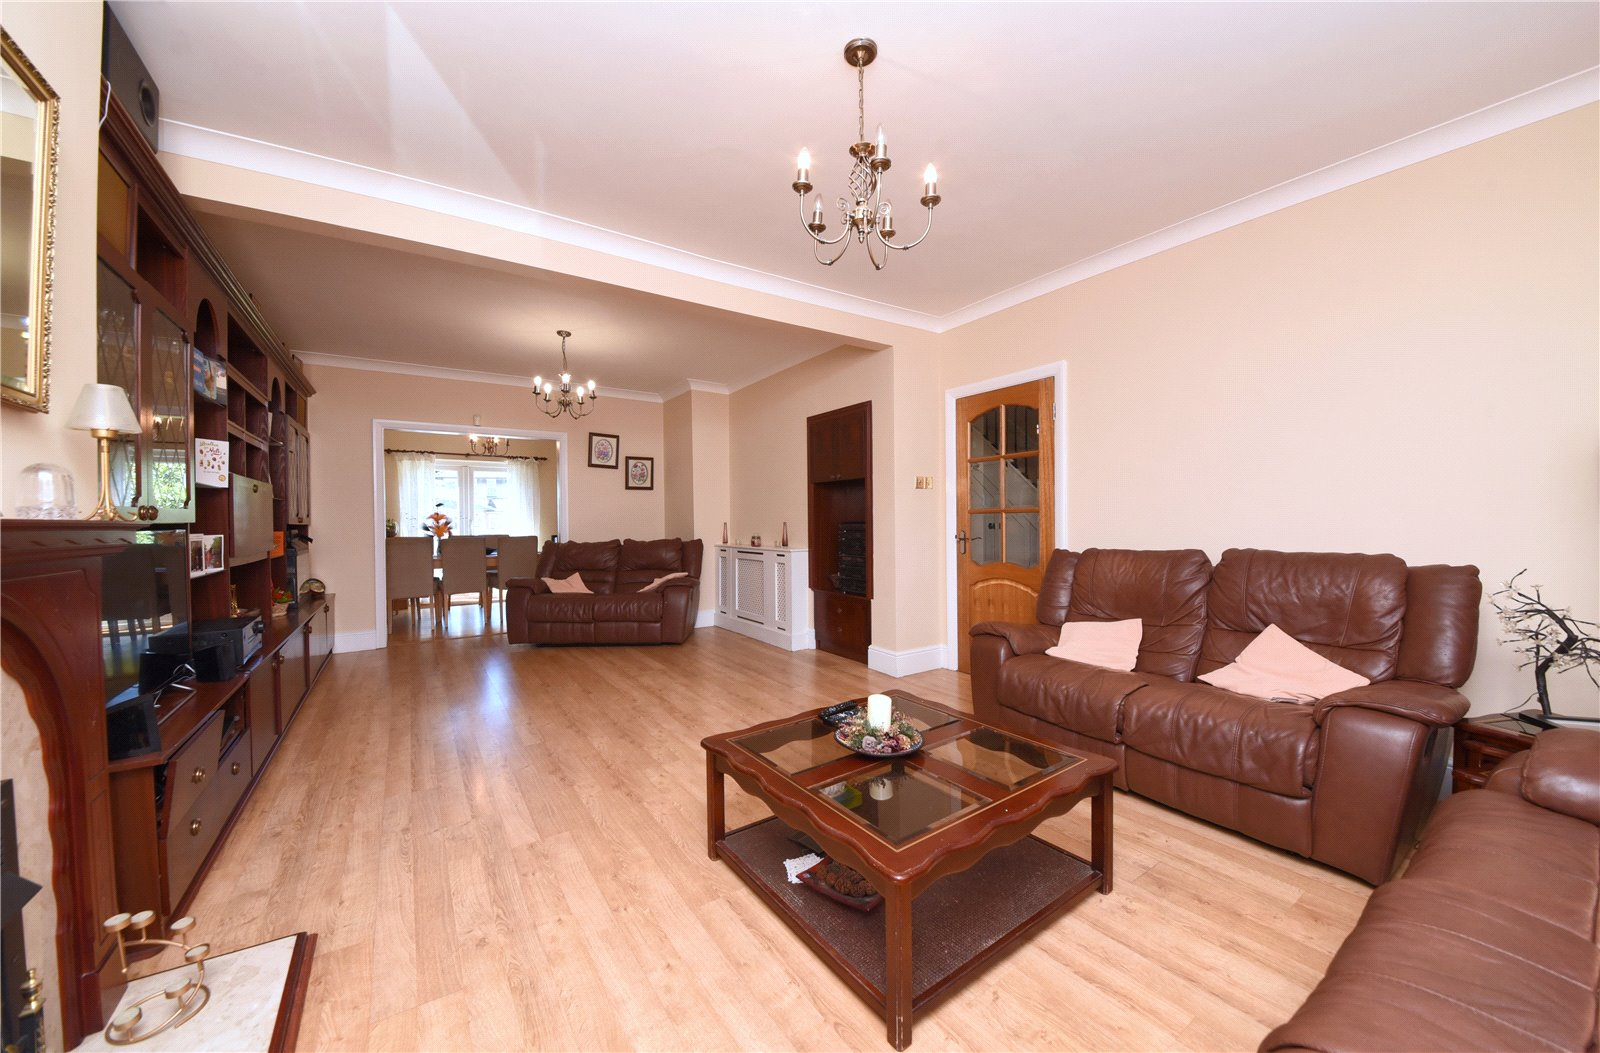 3 bed house for sale in Southgate, N14 4NY  - Property Image 4